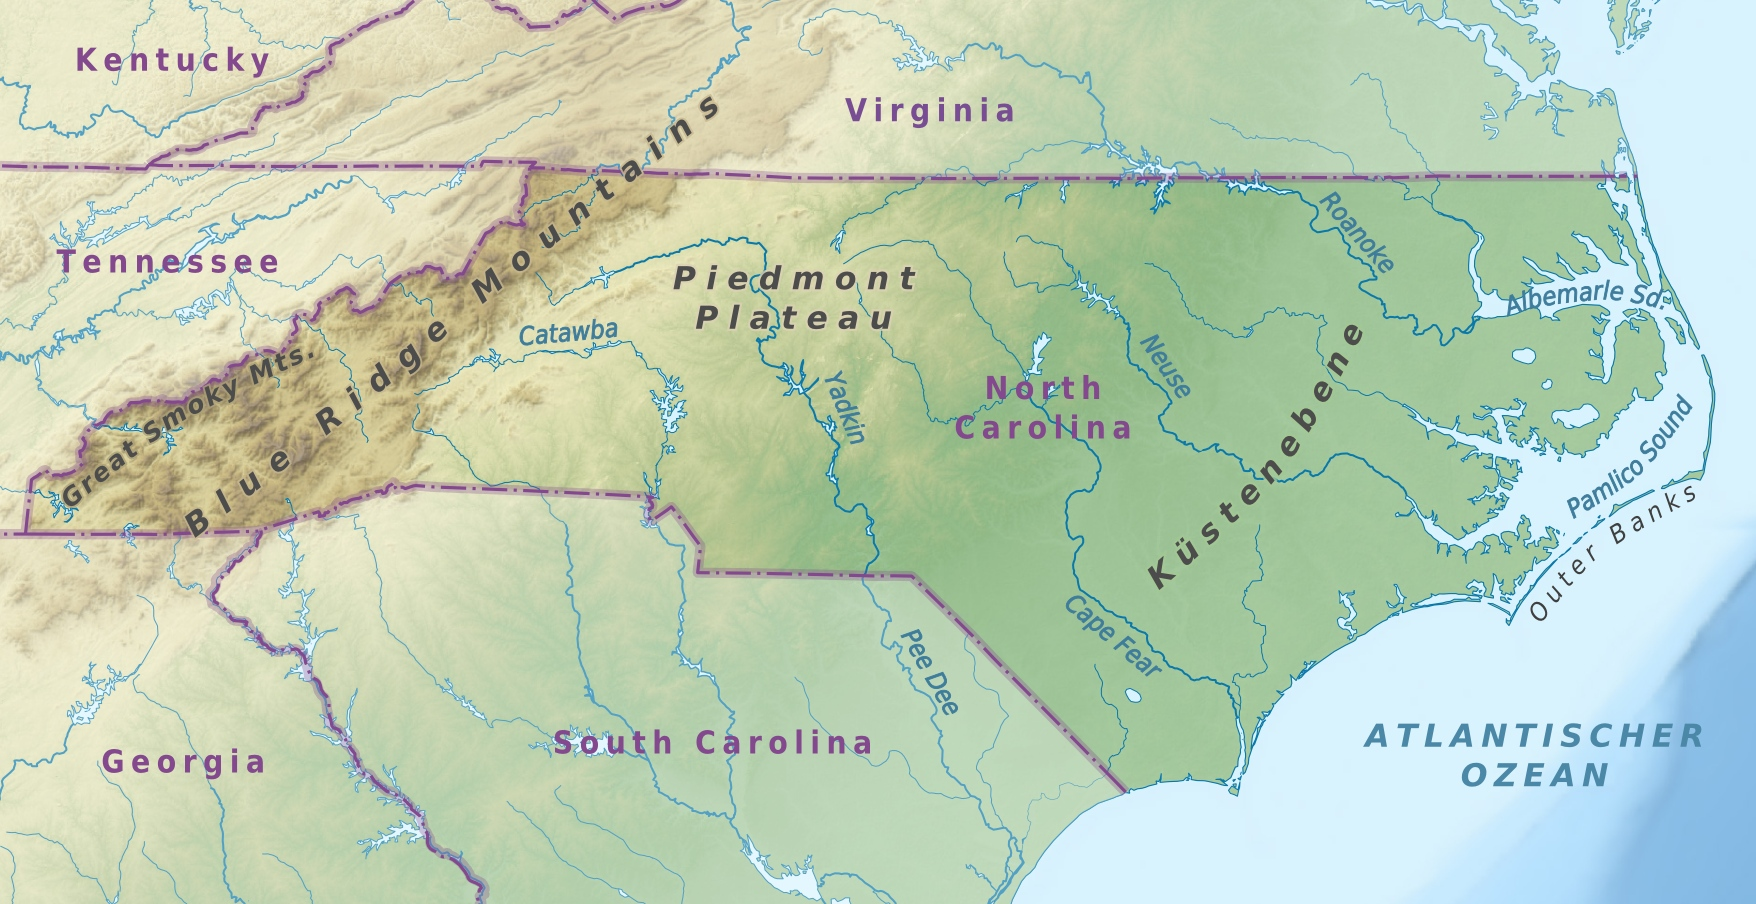 FileUSA North Carolina Physical Mapjpg Wikimedia Commons - Usa map physical